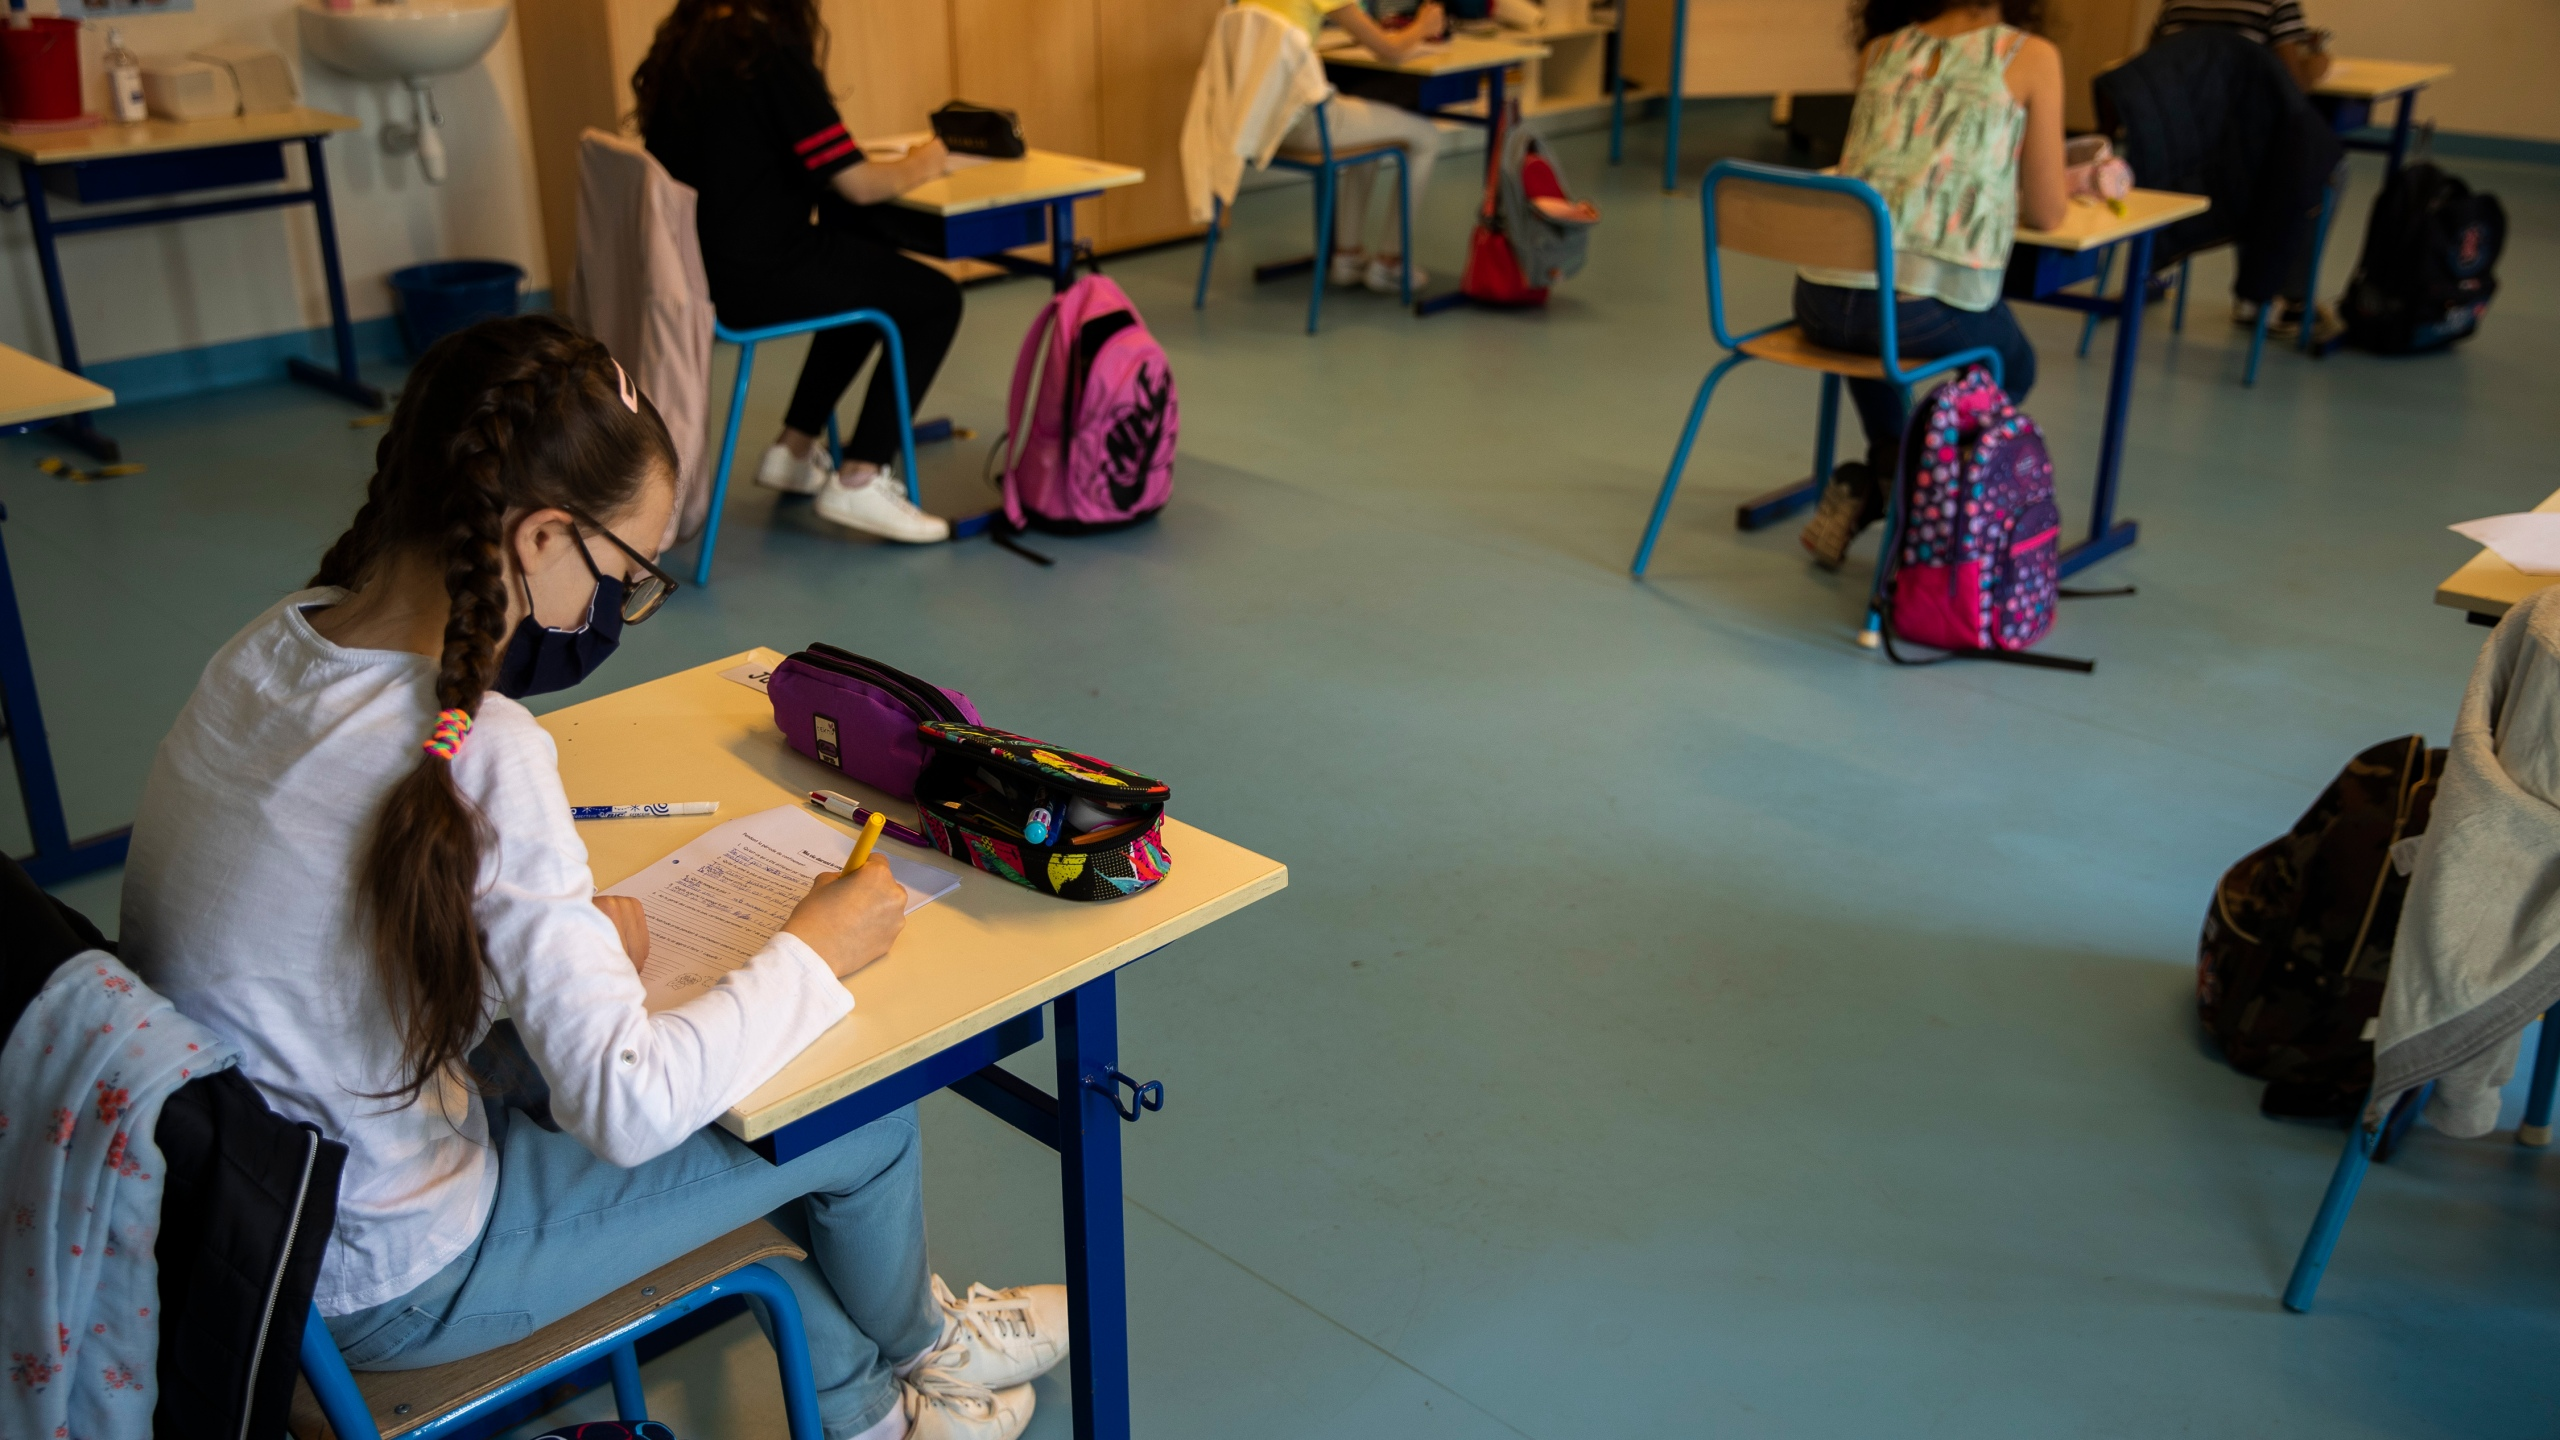 Socially distanced school desks in Belgium